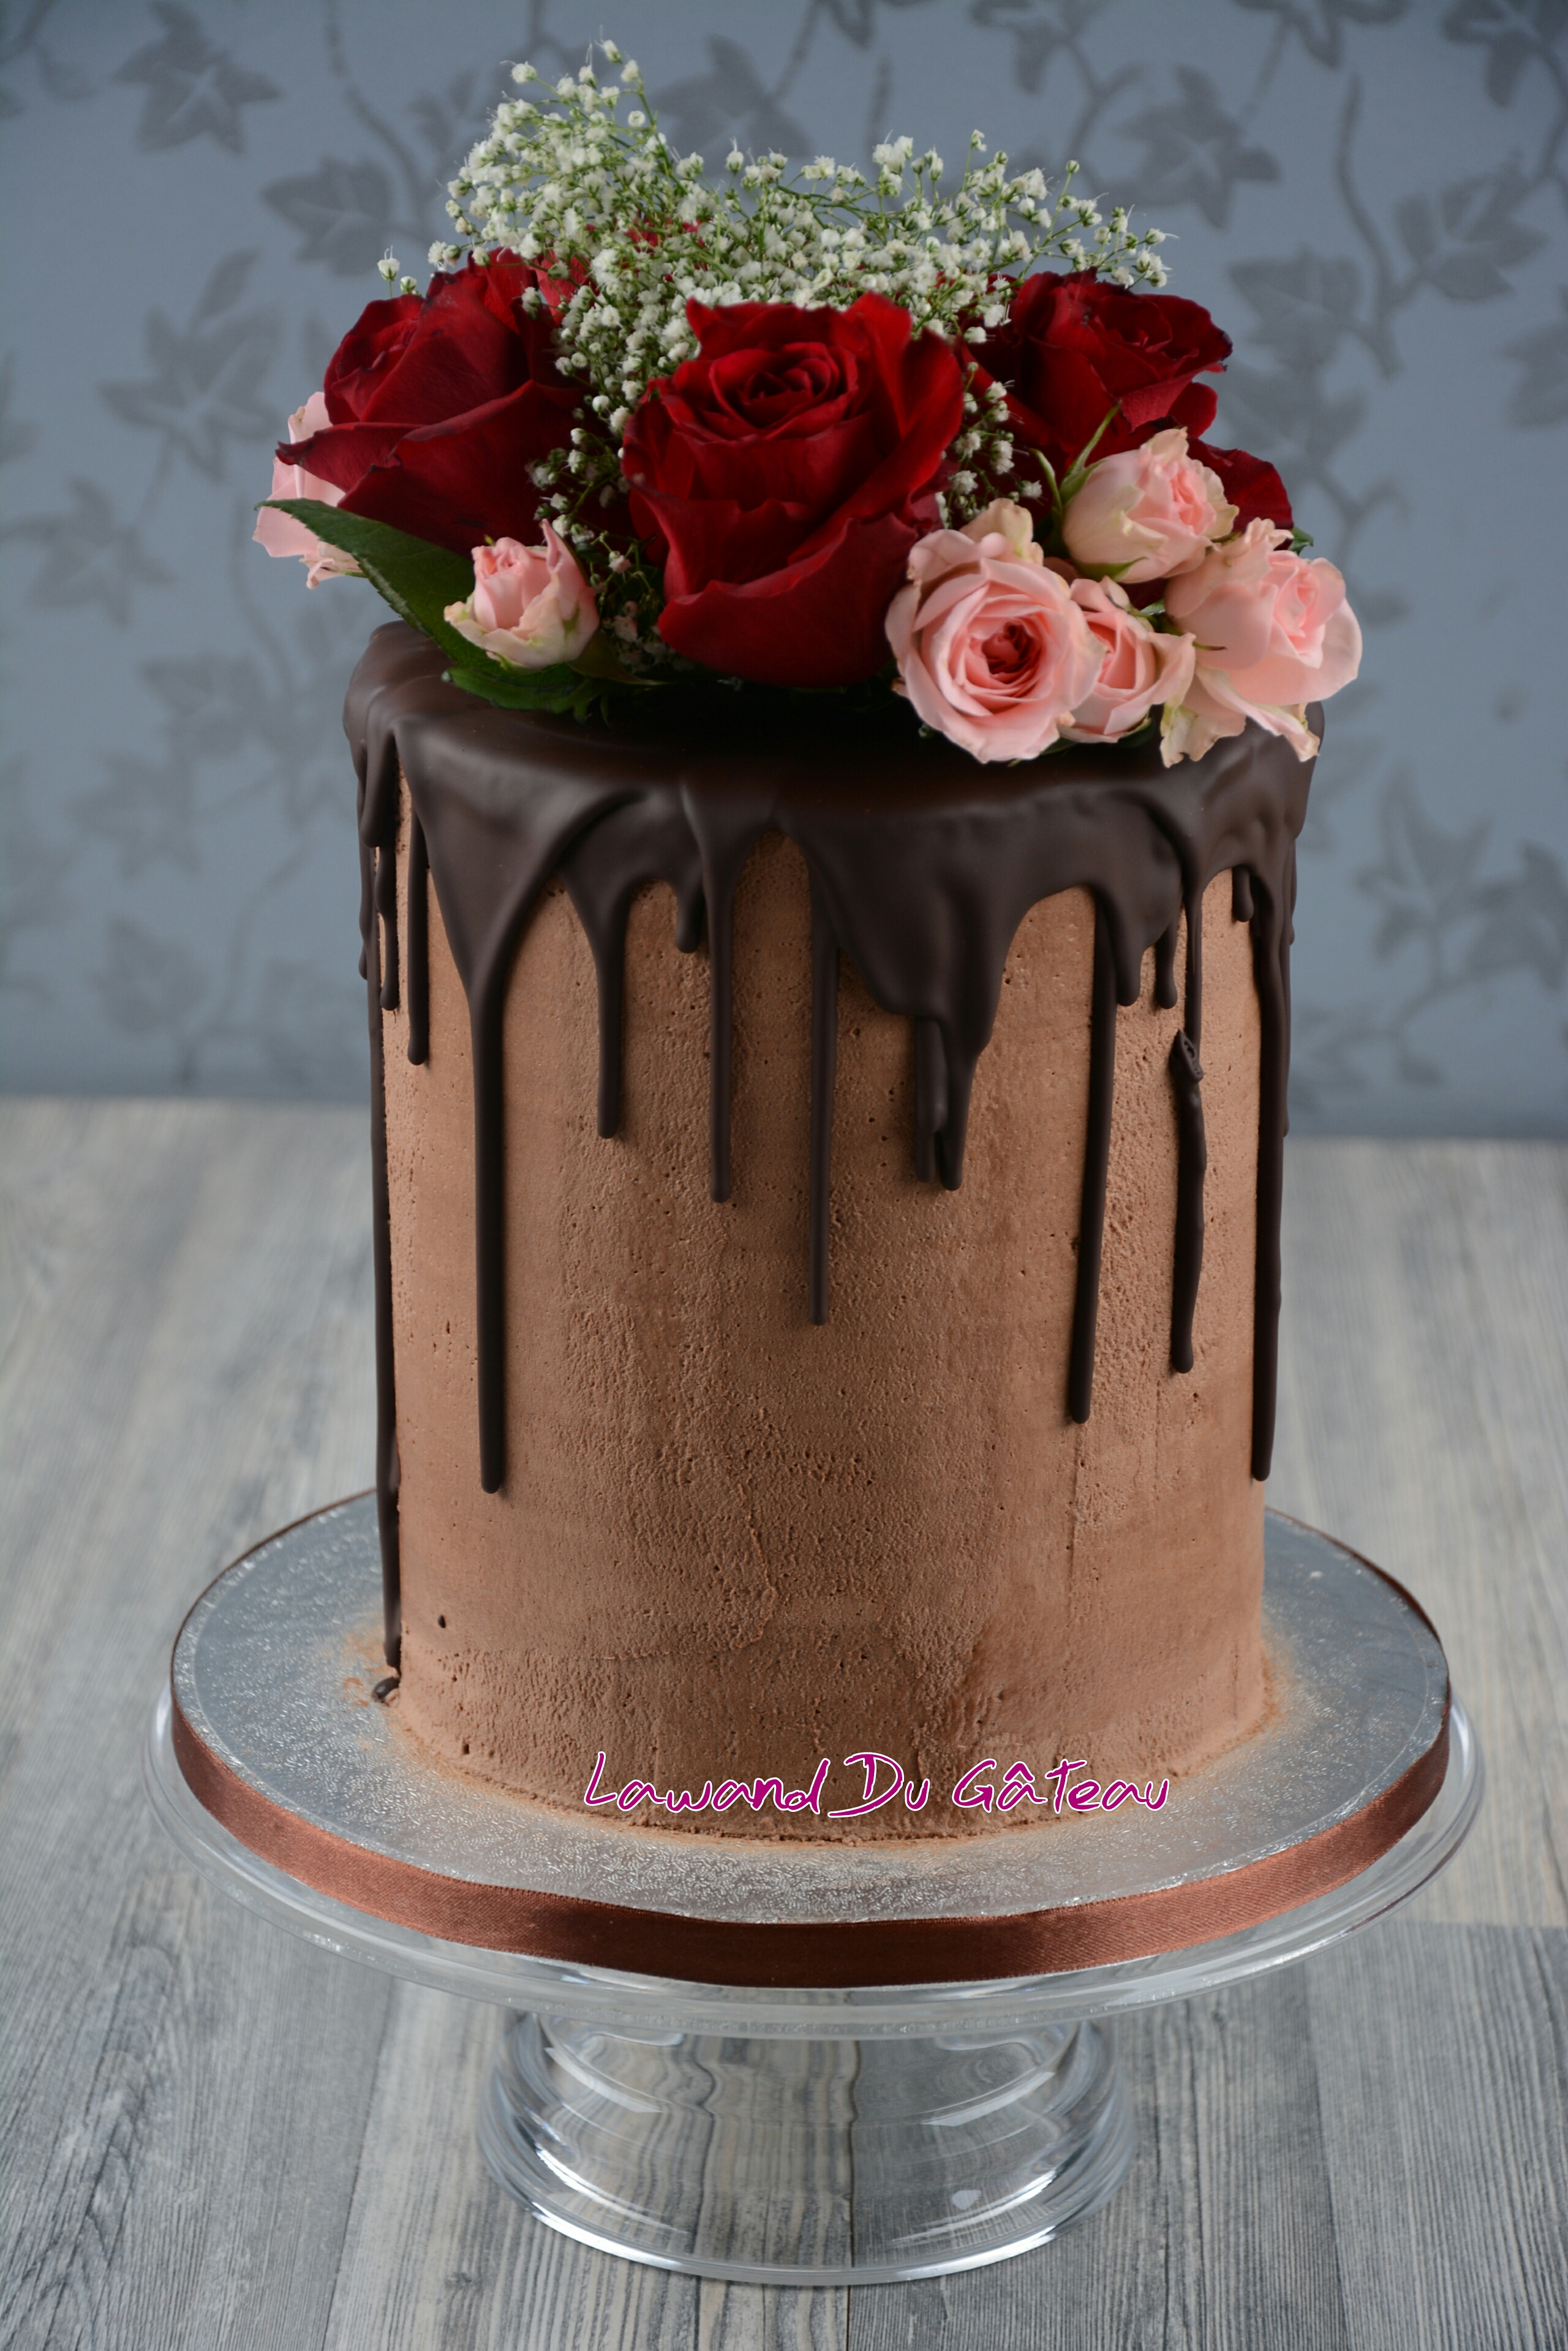 Chocolate colored drip wedding cake with sugar flowers